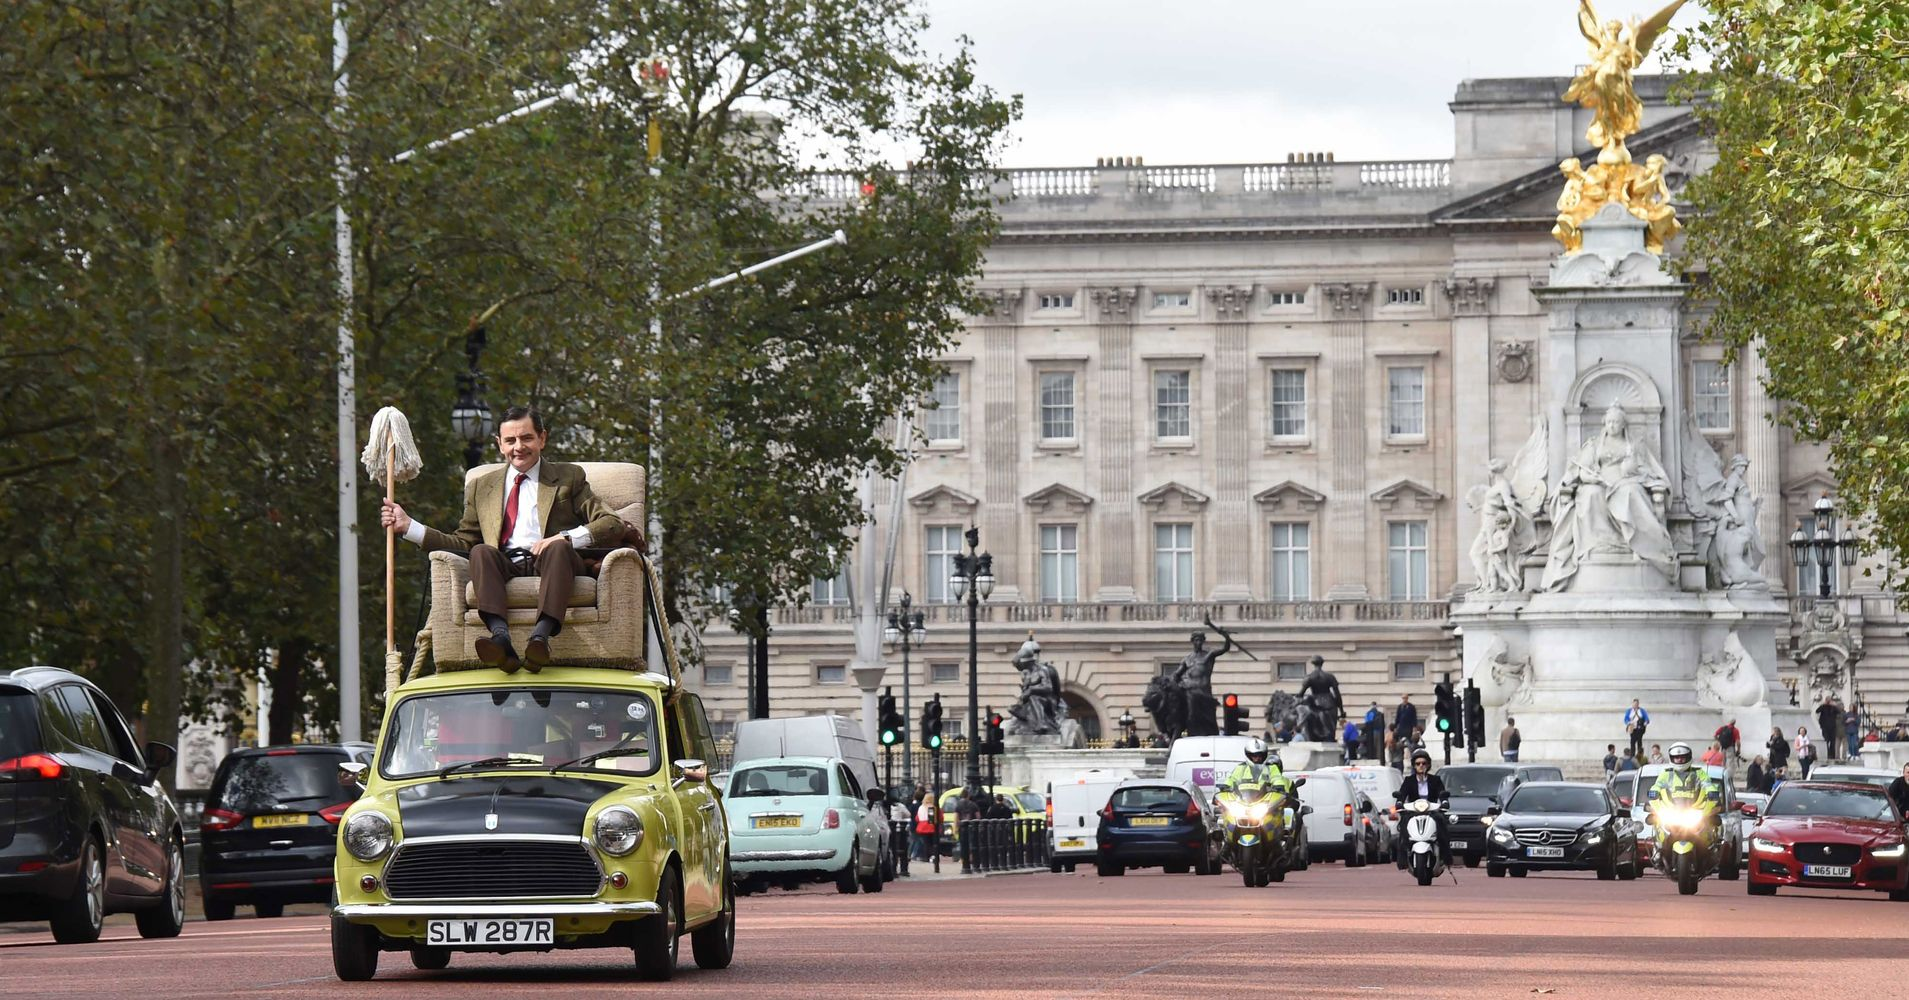 See Mr Bean Drive With A Mop While Reclining Atop His Car In 2015